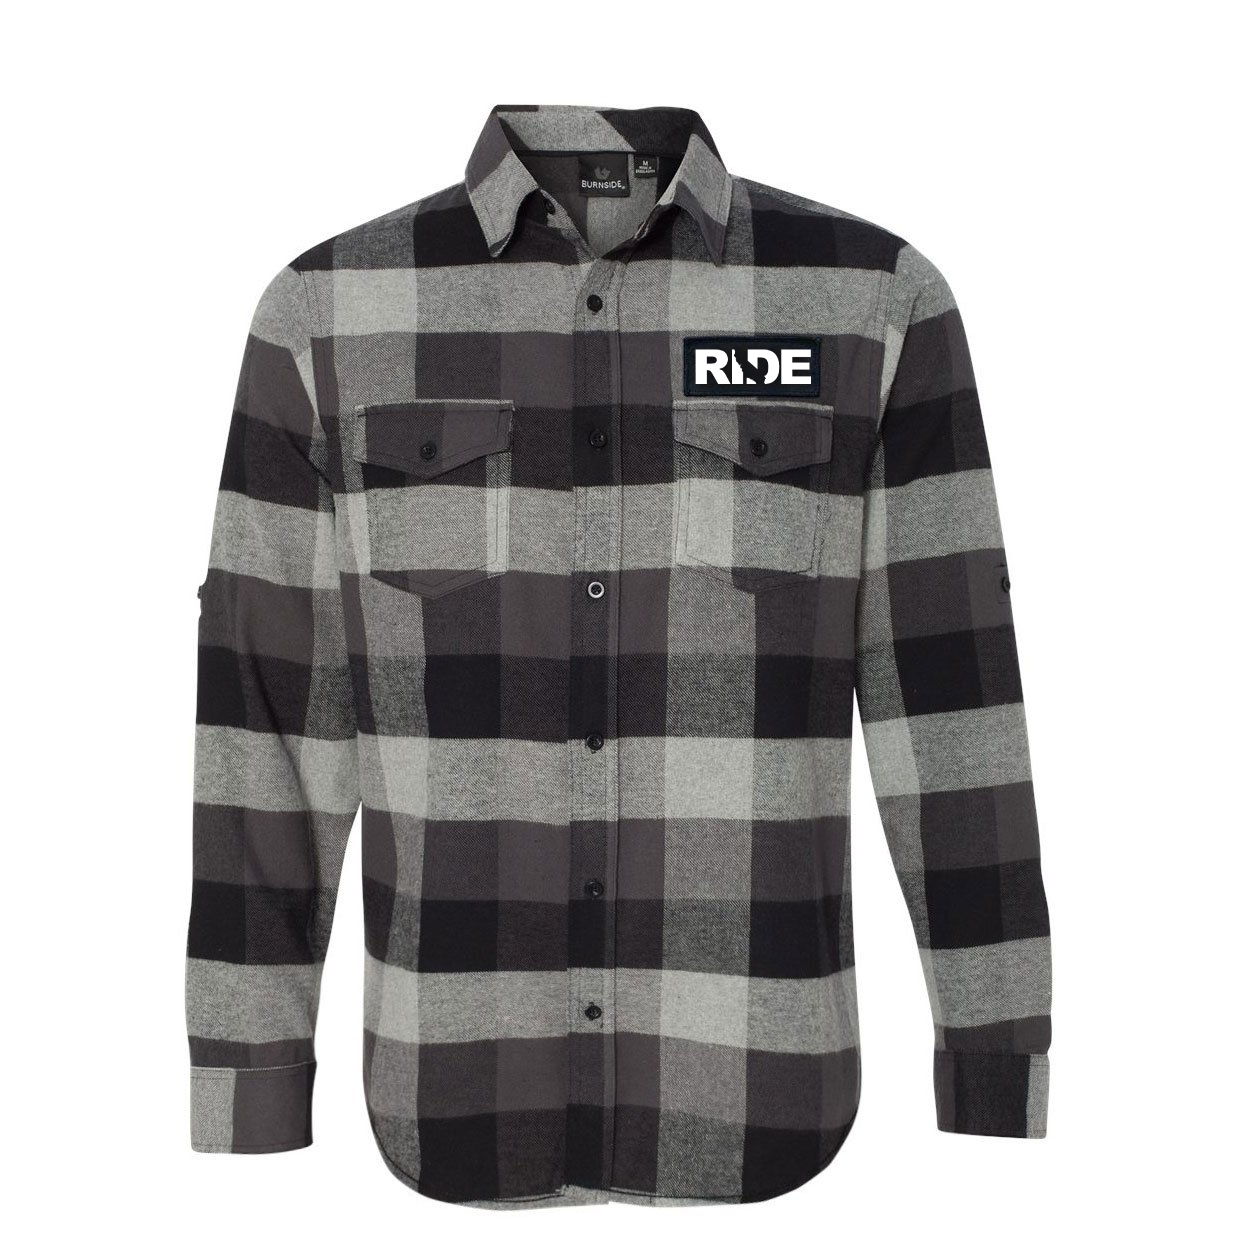 Ride California Classic Unisex Long Sleeve Woven Patch Flannel Shirt Black/Gray (White Logo)